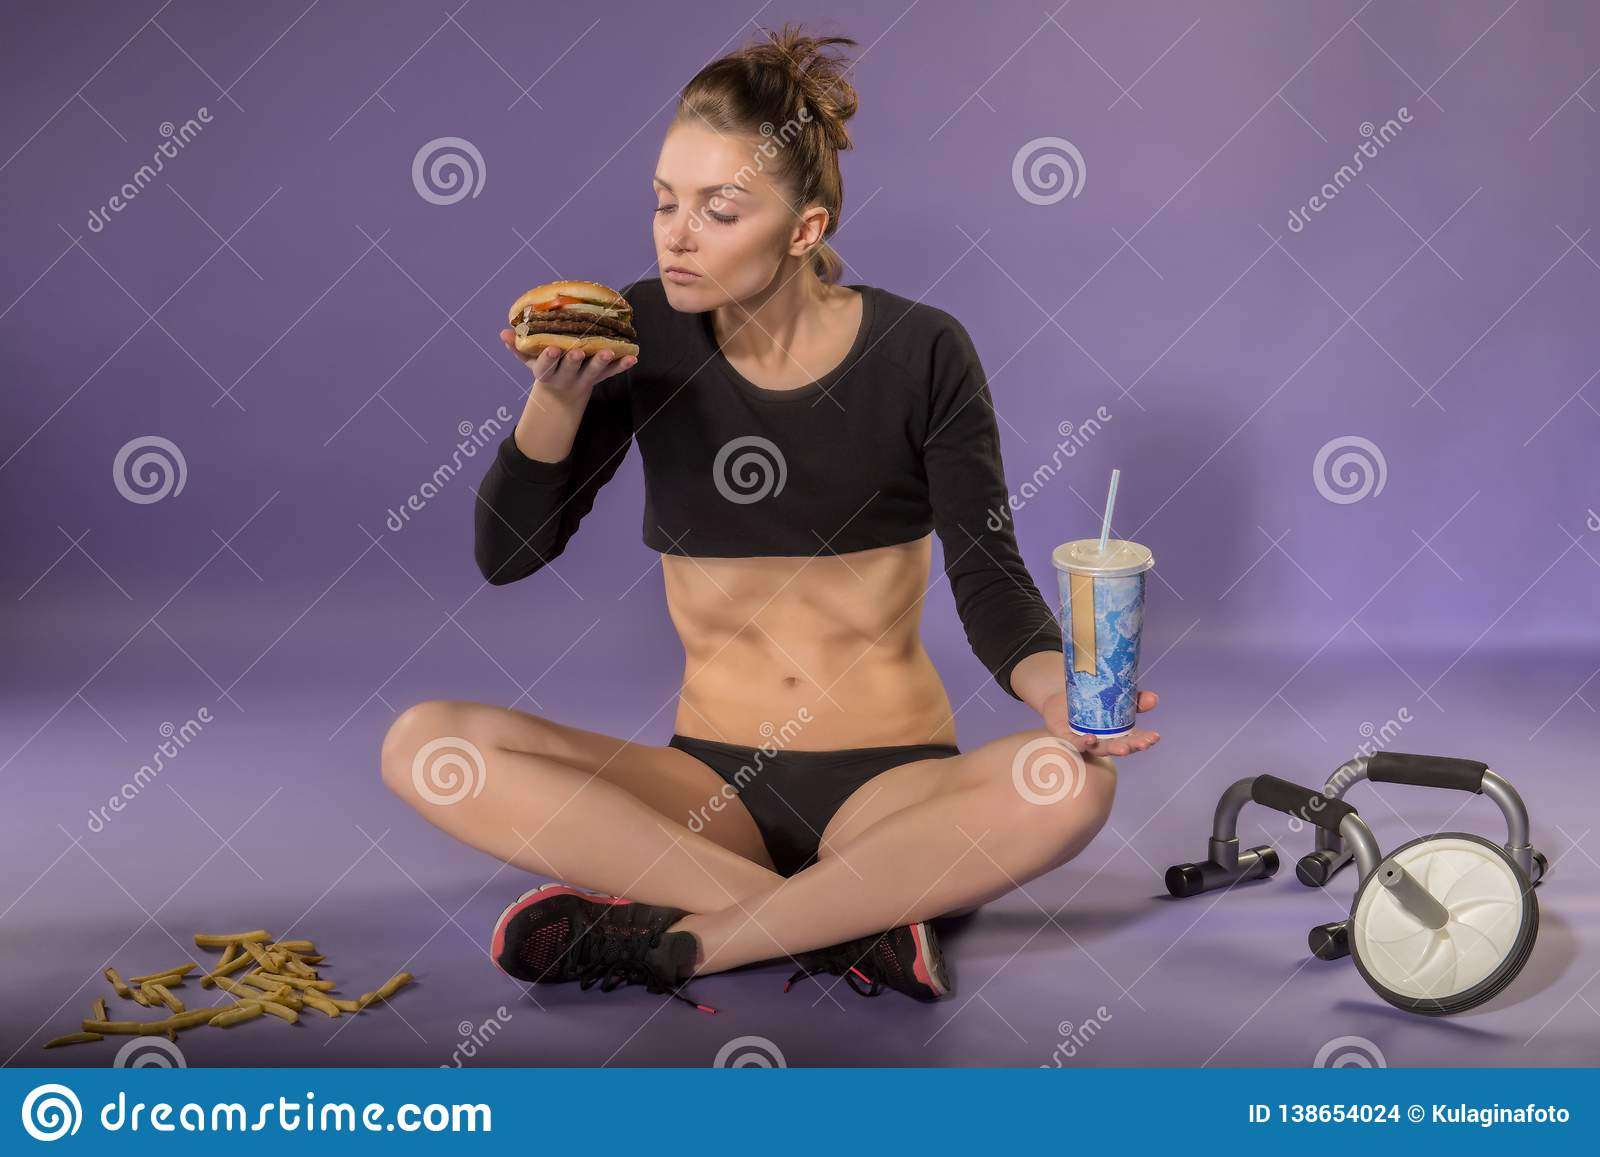 Figure and diet of a young girl. Diet. Sport and the right food.